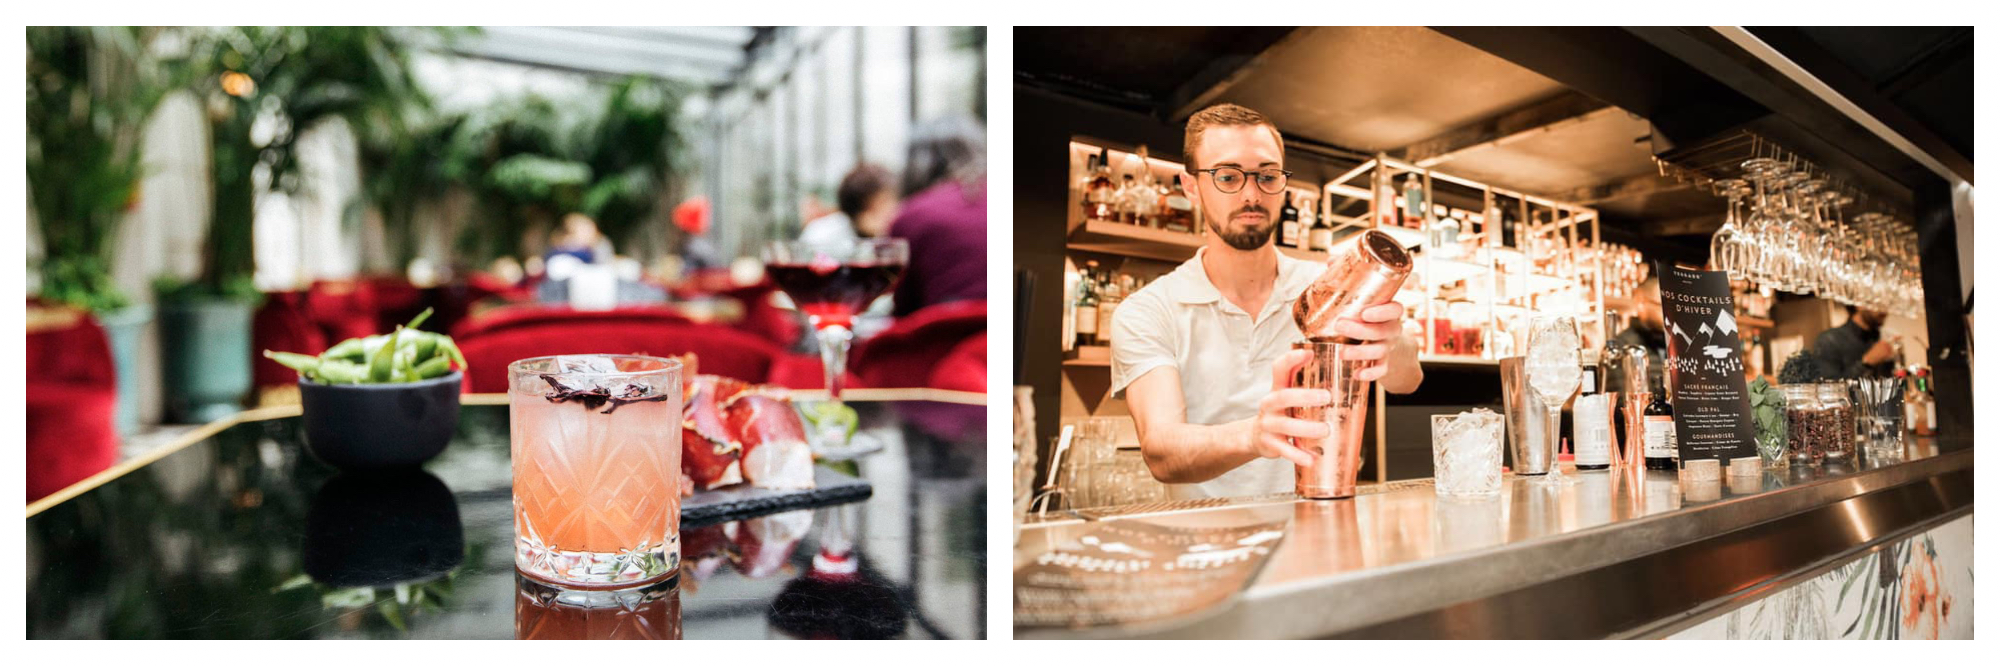 On left: A peachy floral cocktail sits in a sparkling glass at Le Très Particulier, the bar of Hôtel Particulier in Montmartre. On right: A bartender shakes up cocktails under the orange glow of the lights at the Terrass Hotel, a rooftop bar in Paris' 18th arrondissement.